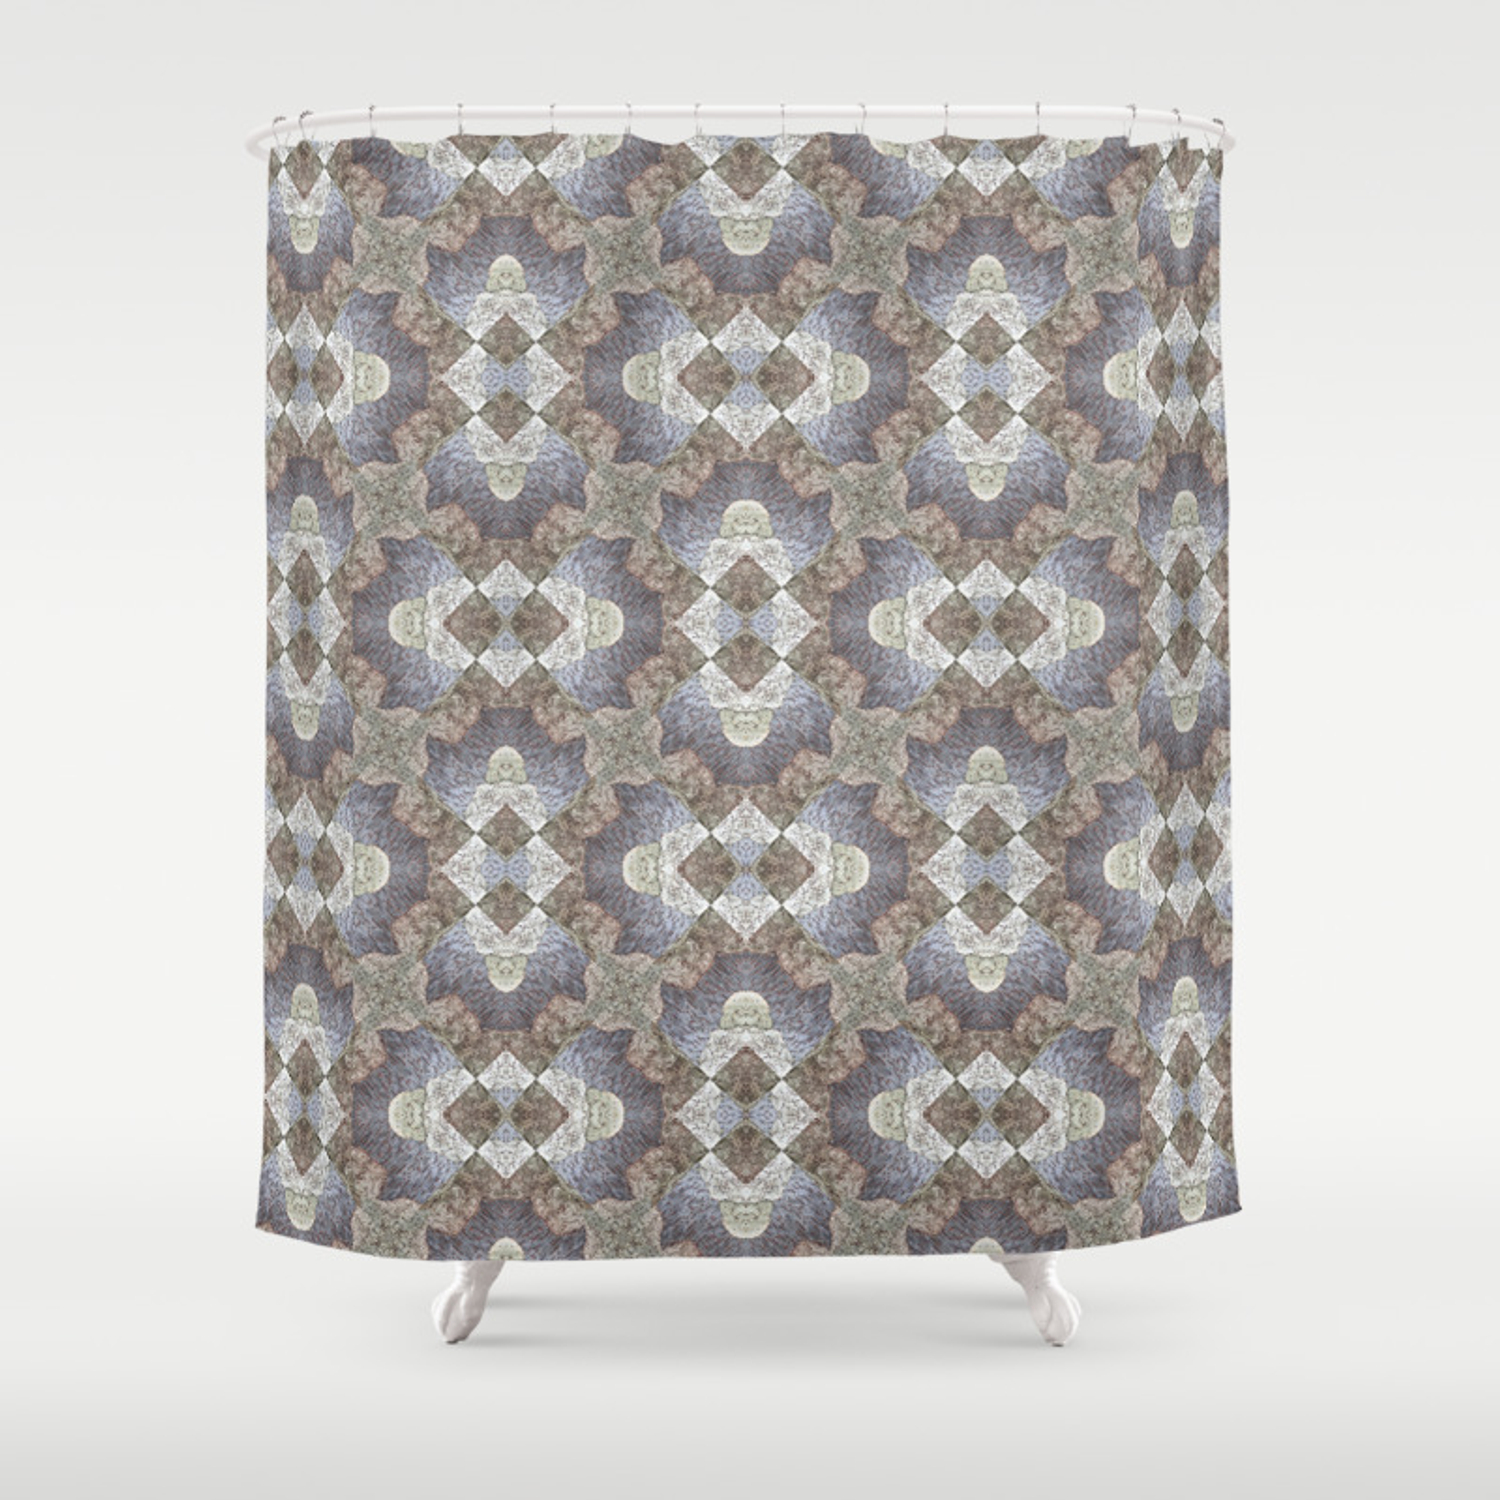 Tree Weave 4 Fabric Shower Curtain